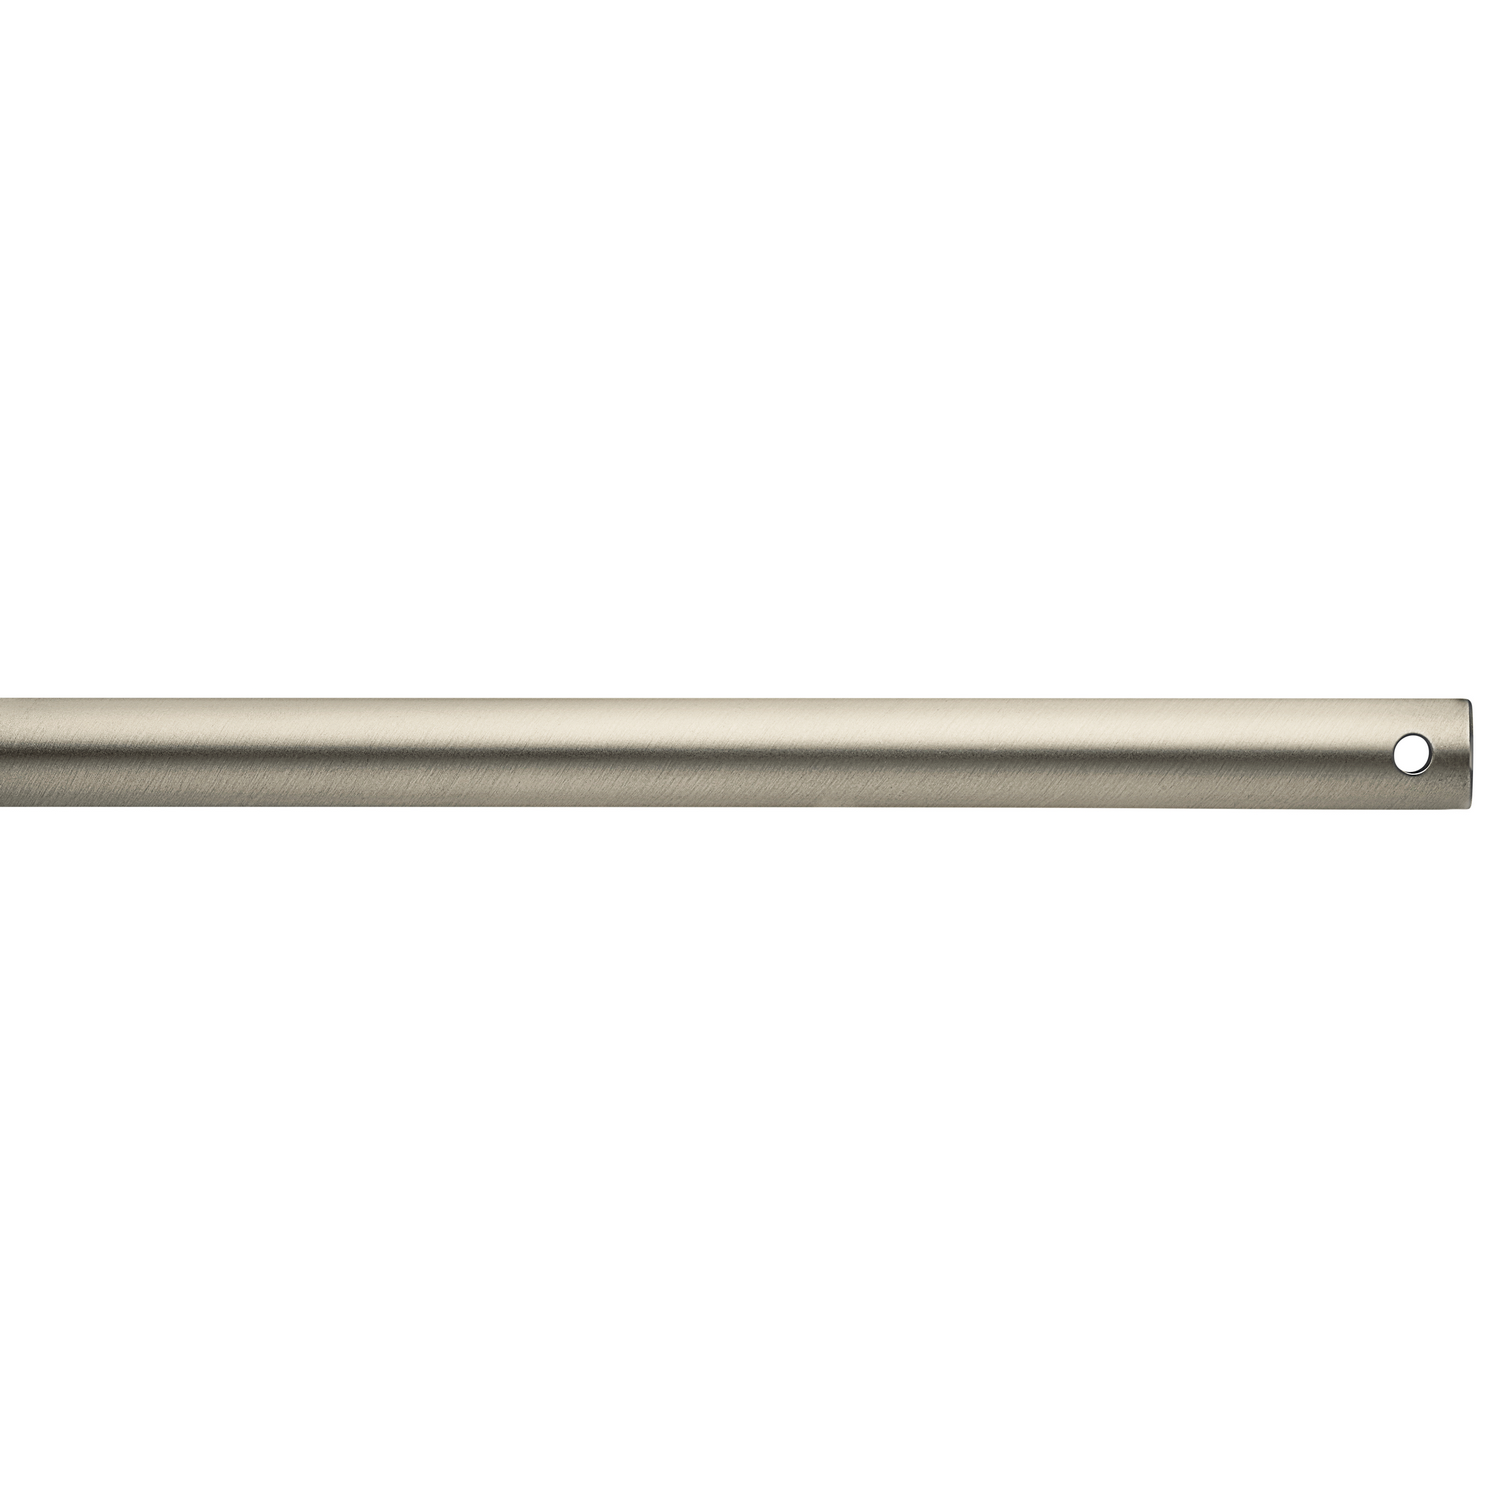 Down Rod from the Basics collection by Kichler 454NI